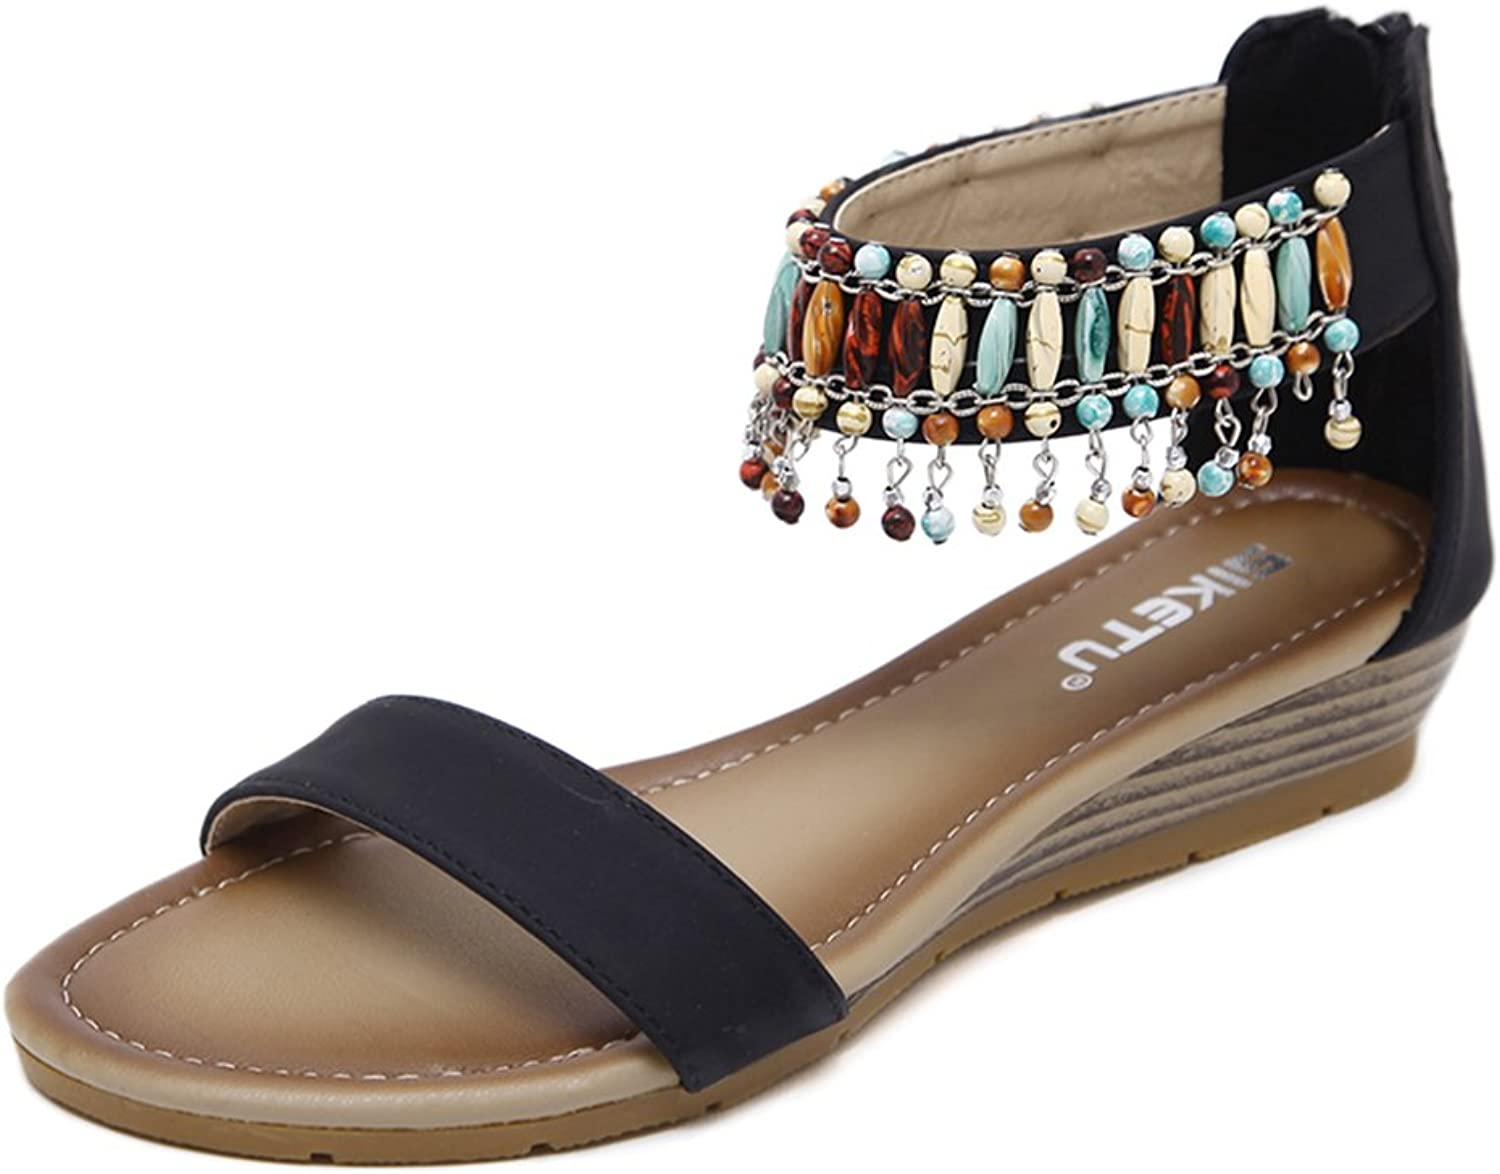 Tuoup Women's Beaded Jeweled Leather Zippered Sandals Sandles